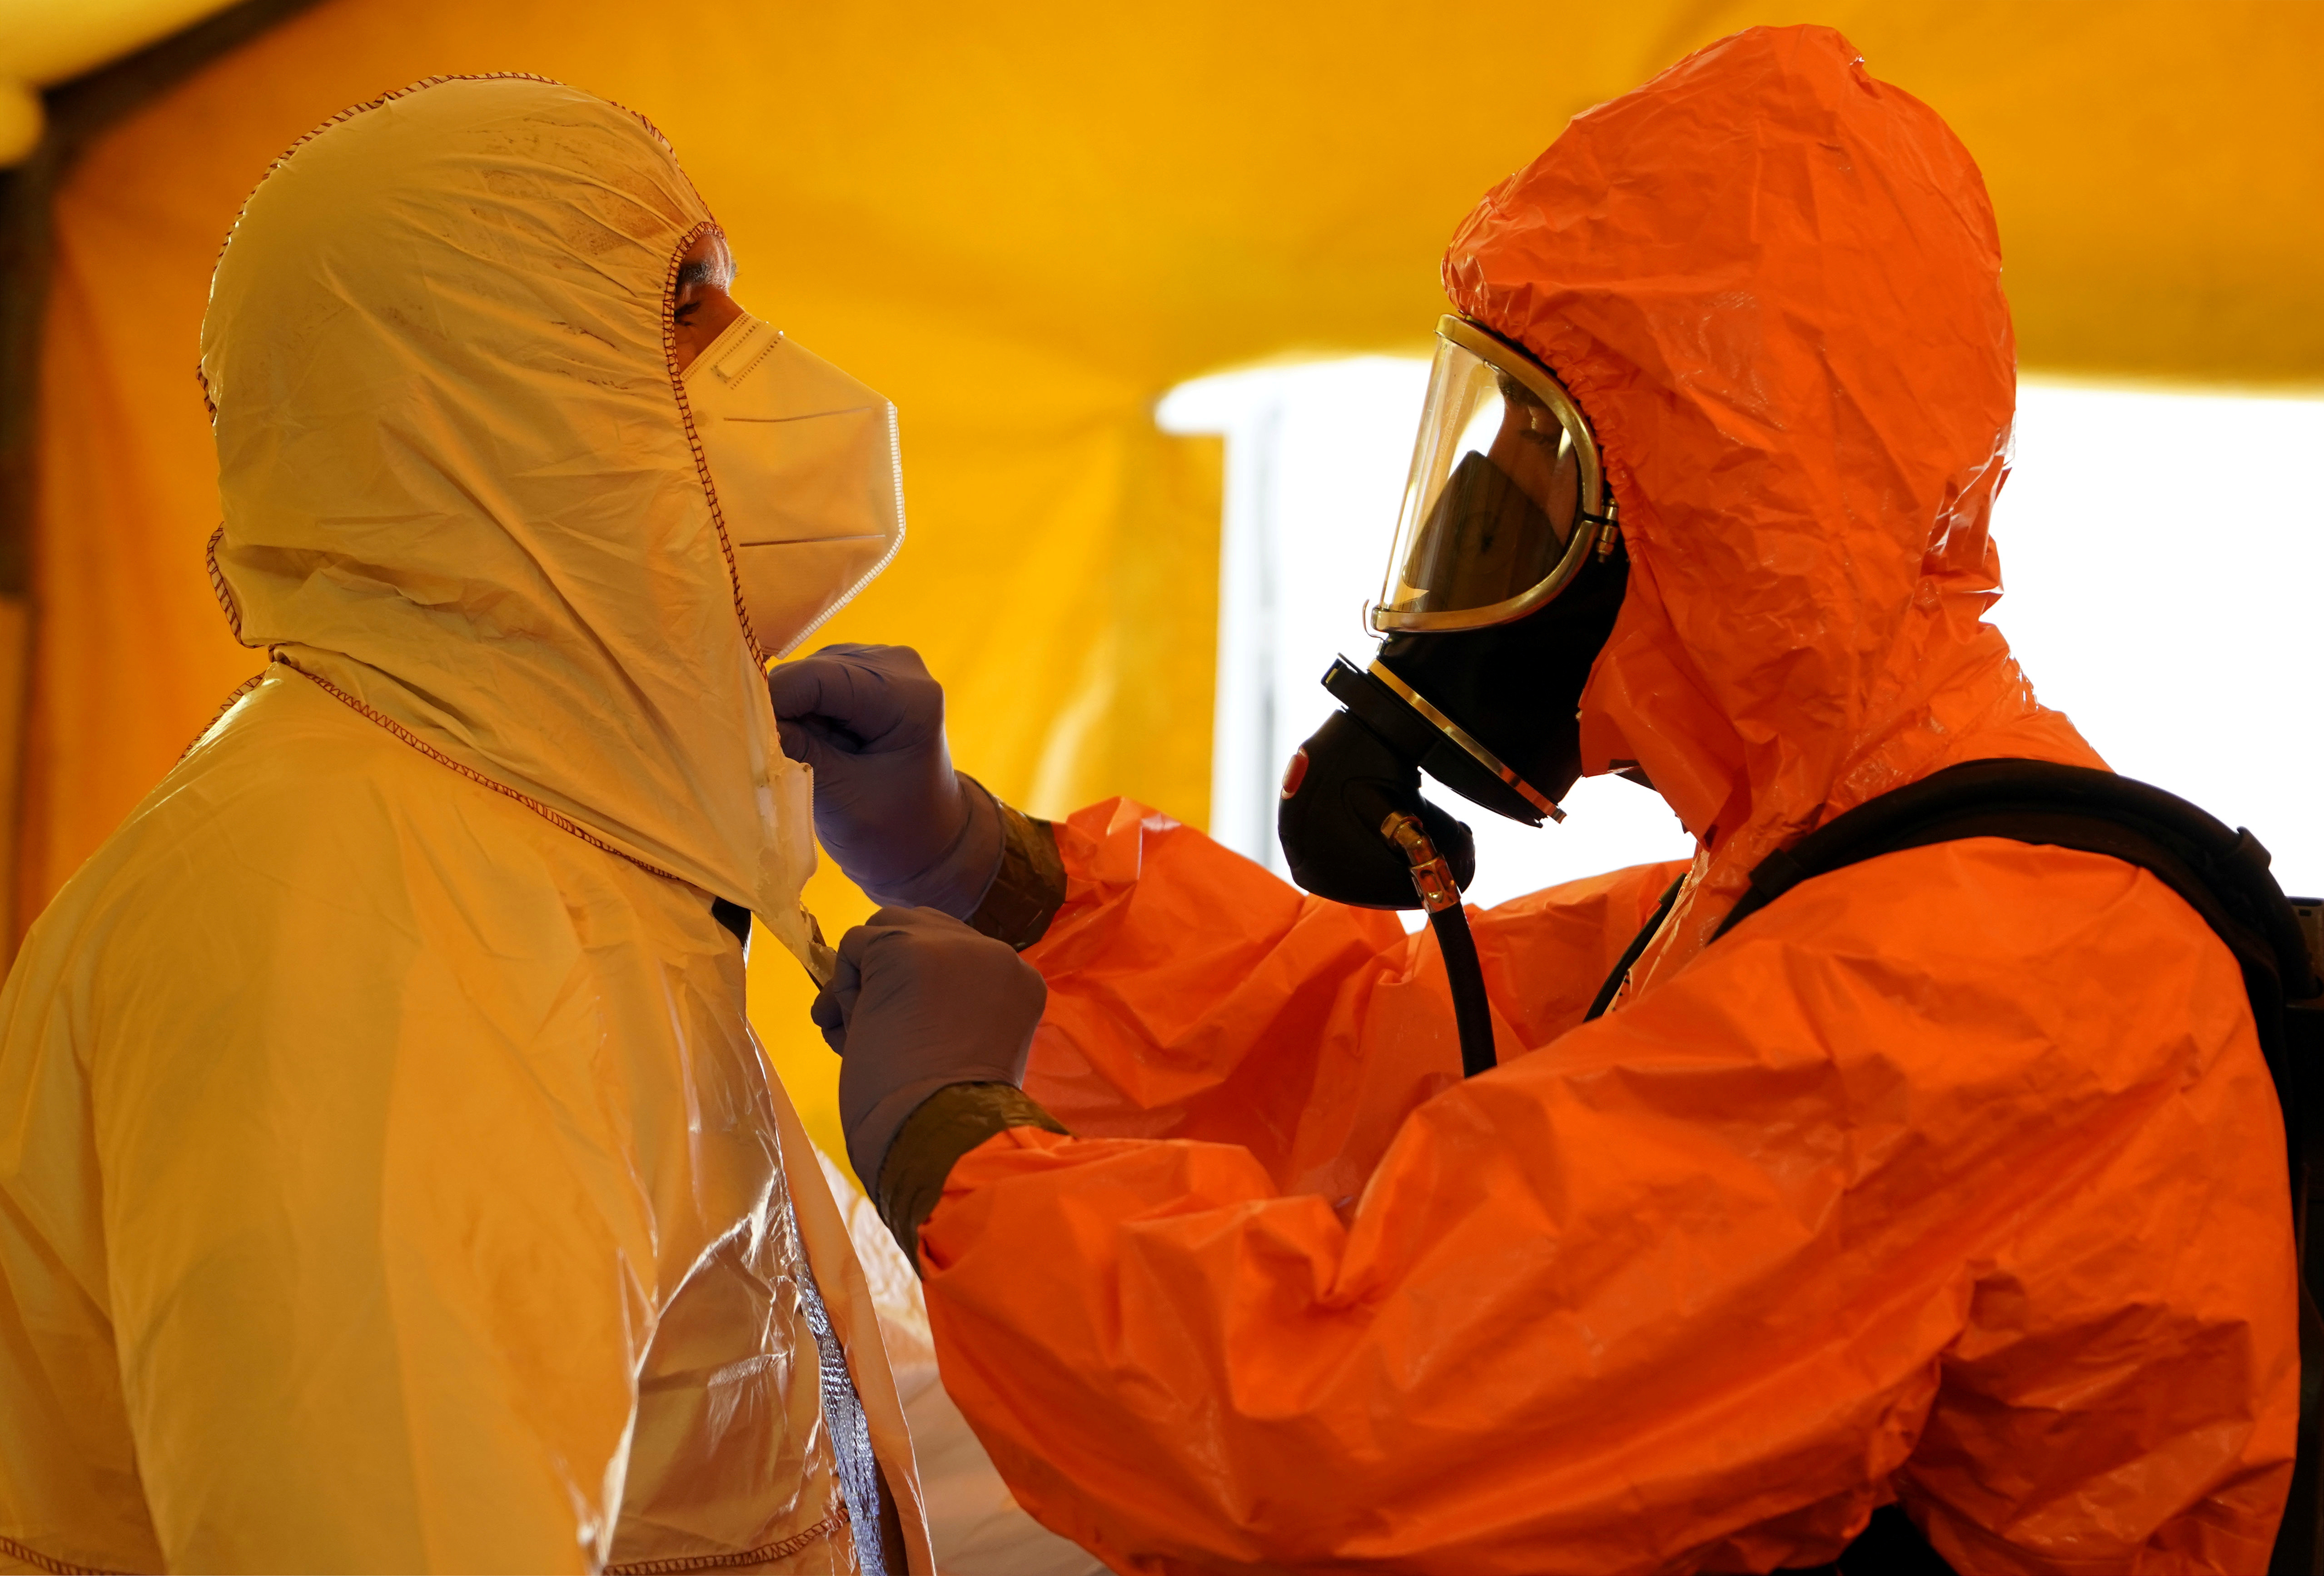 A member of Madrid's SAMUR Ambulance Service adjusts protective gear of his colleague, during the coronavirus disease (COVID-19) pandemic, at their headquarters in Madrid, Spain, August 26, 2020. Picture taken August 26, 2020. REUTERS/Juan Medina - RC28MI929BW8